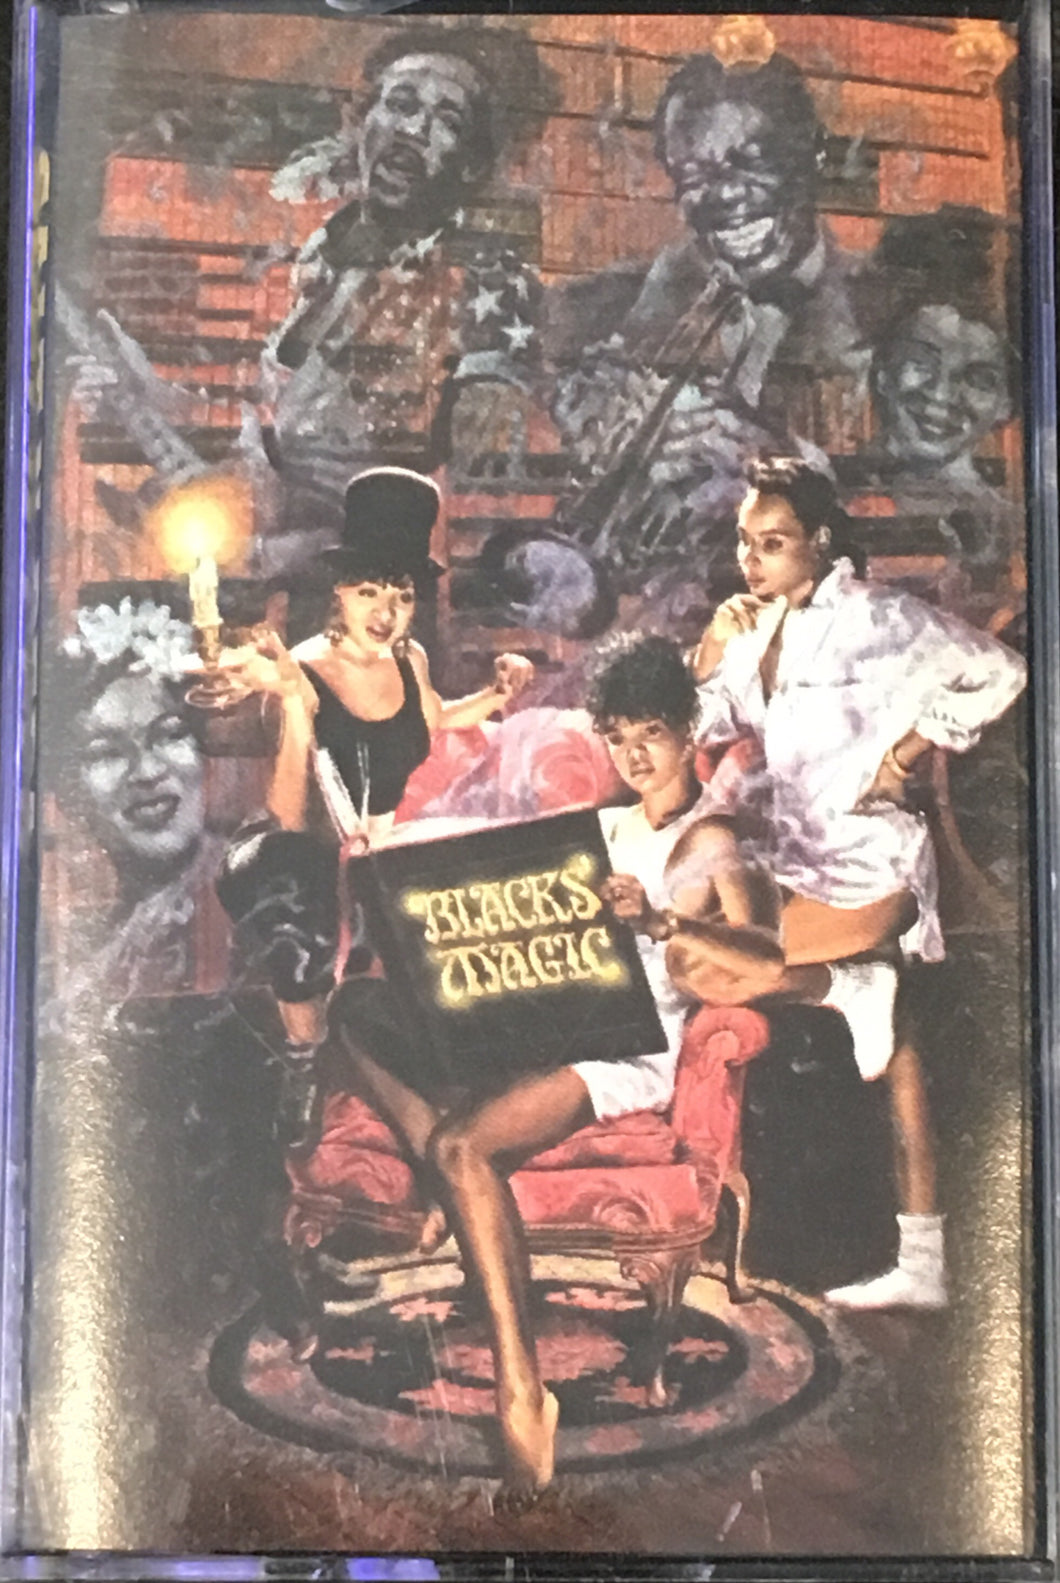 Salt N Pepa - Blacks' Magic Cassette VG